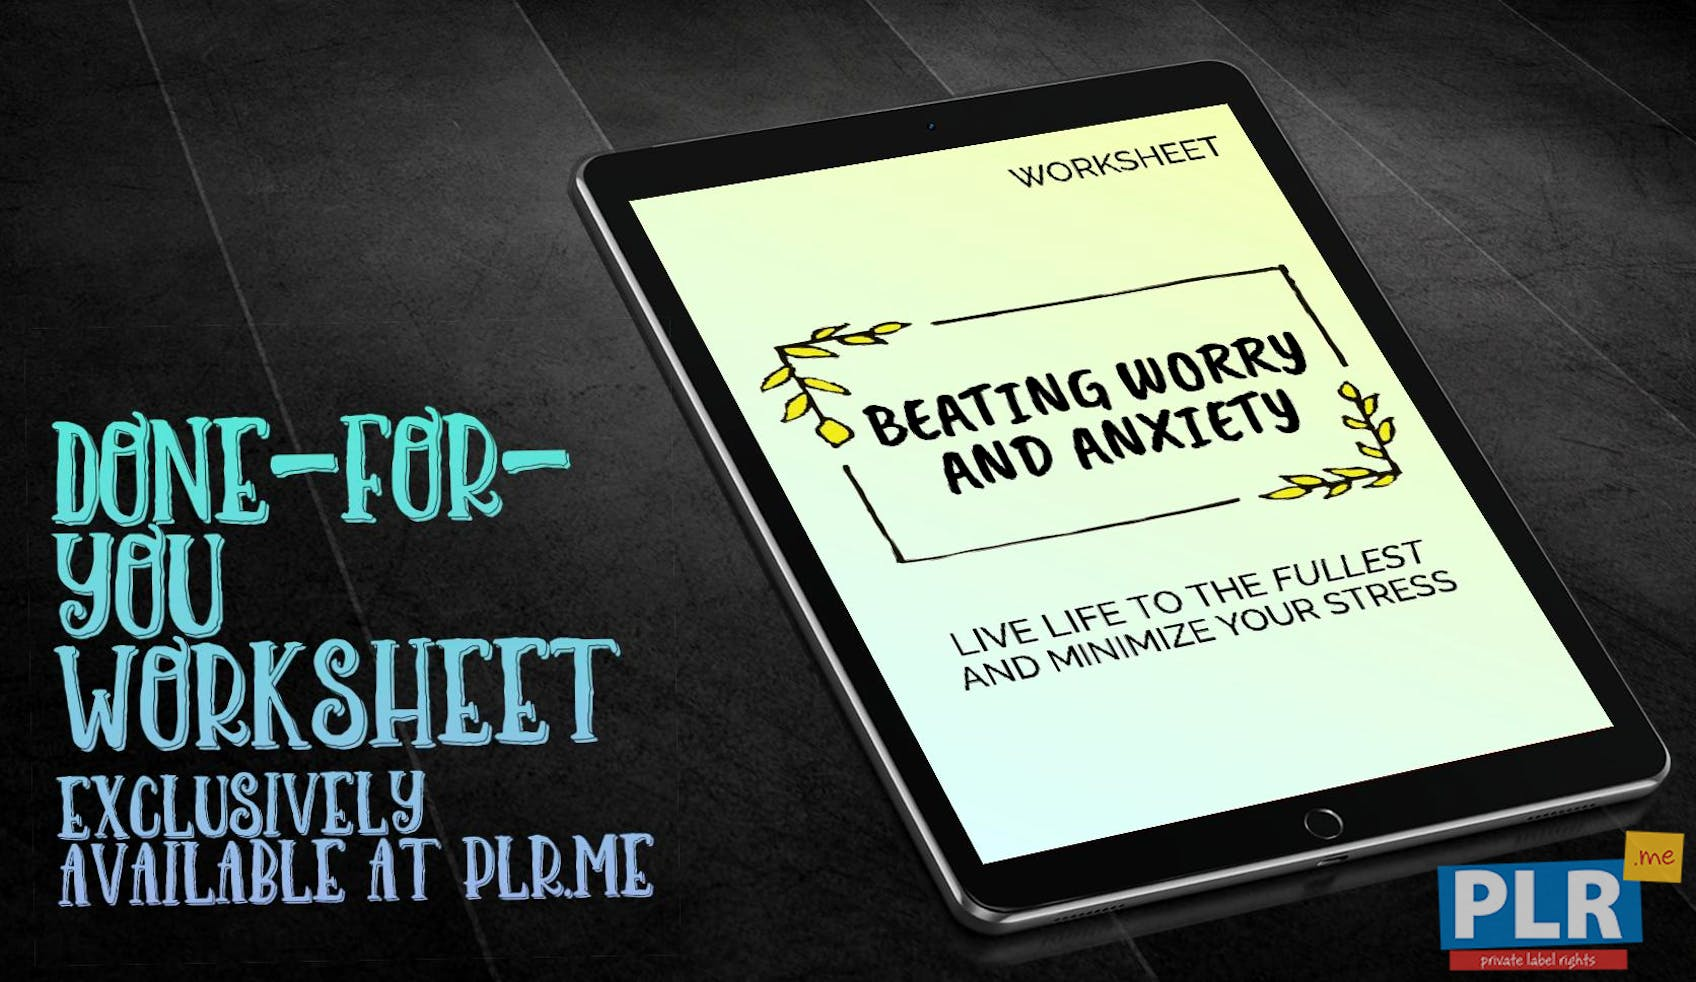 Beating Worry And Anxiety Live Life To The Fullest And Minimize Your Stress Worksheet